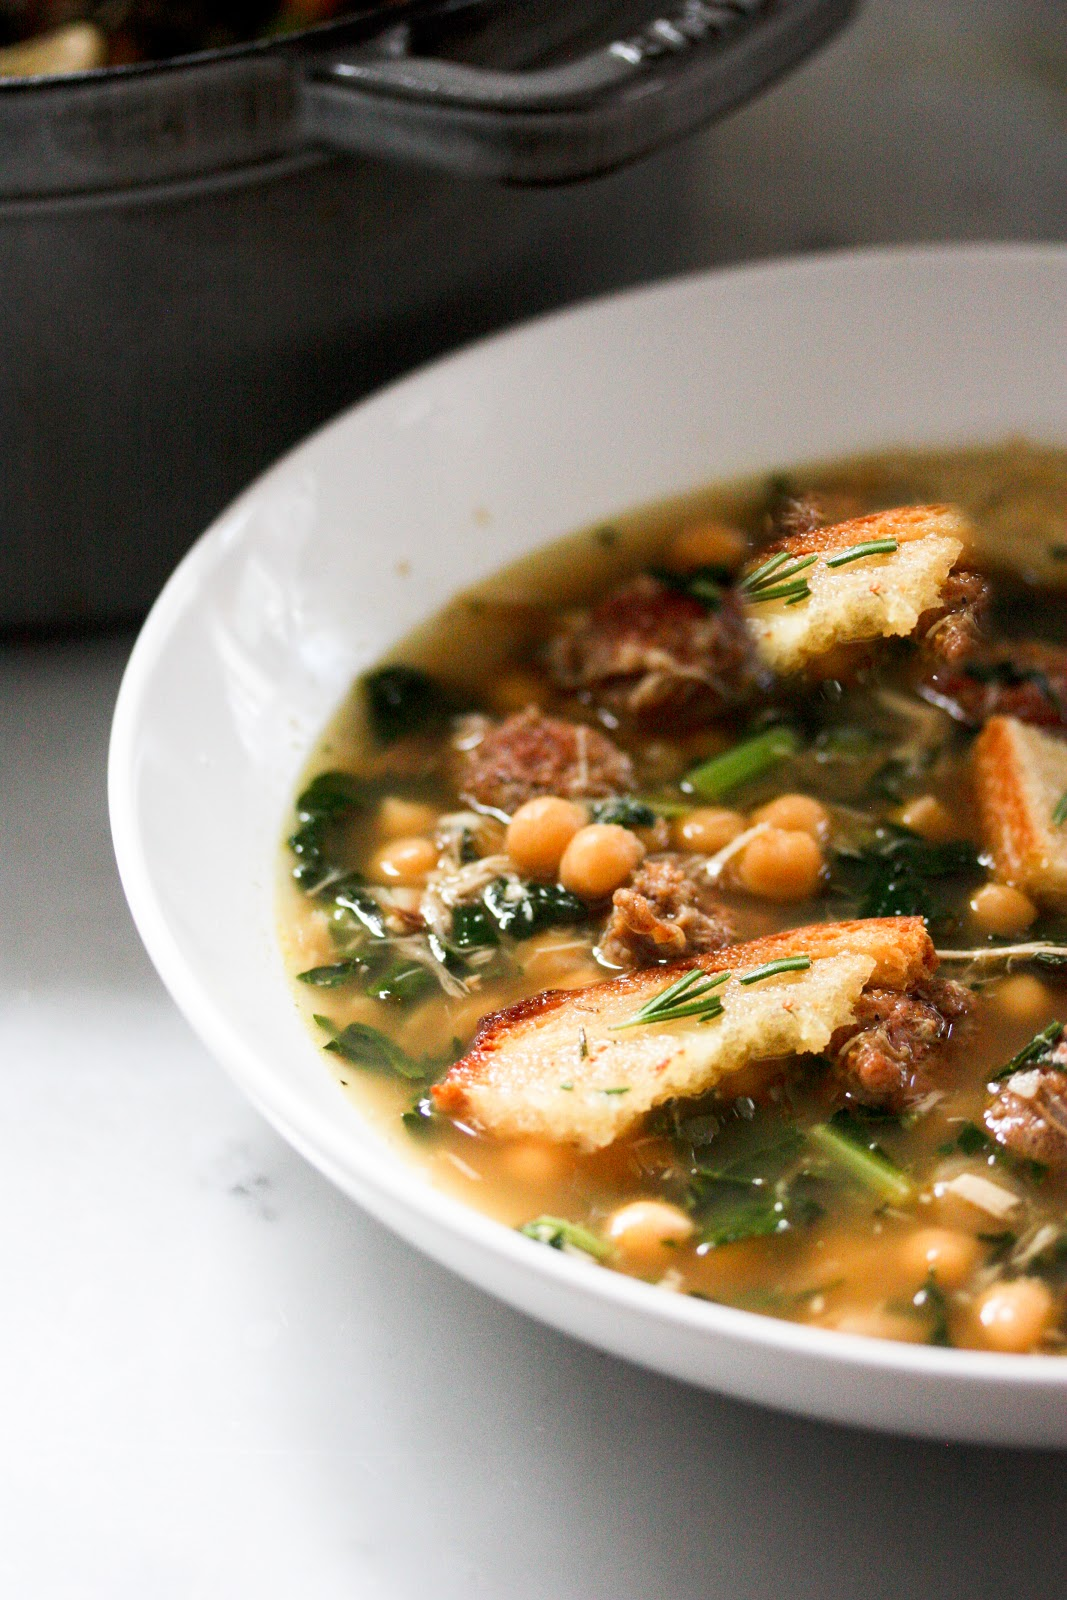 kale_+chicken+and+chickpea+soup-7814.jpg